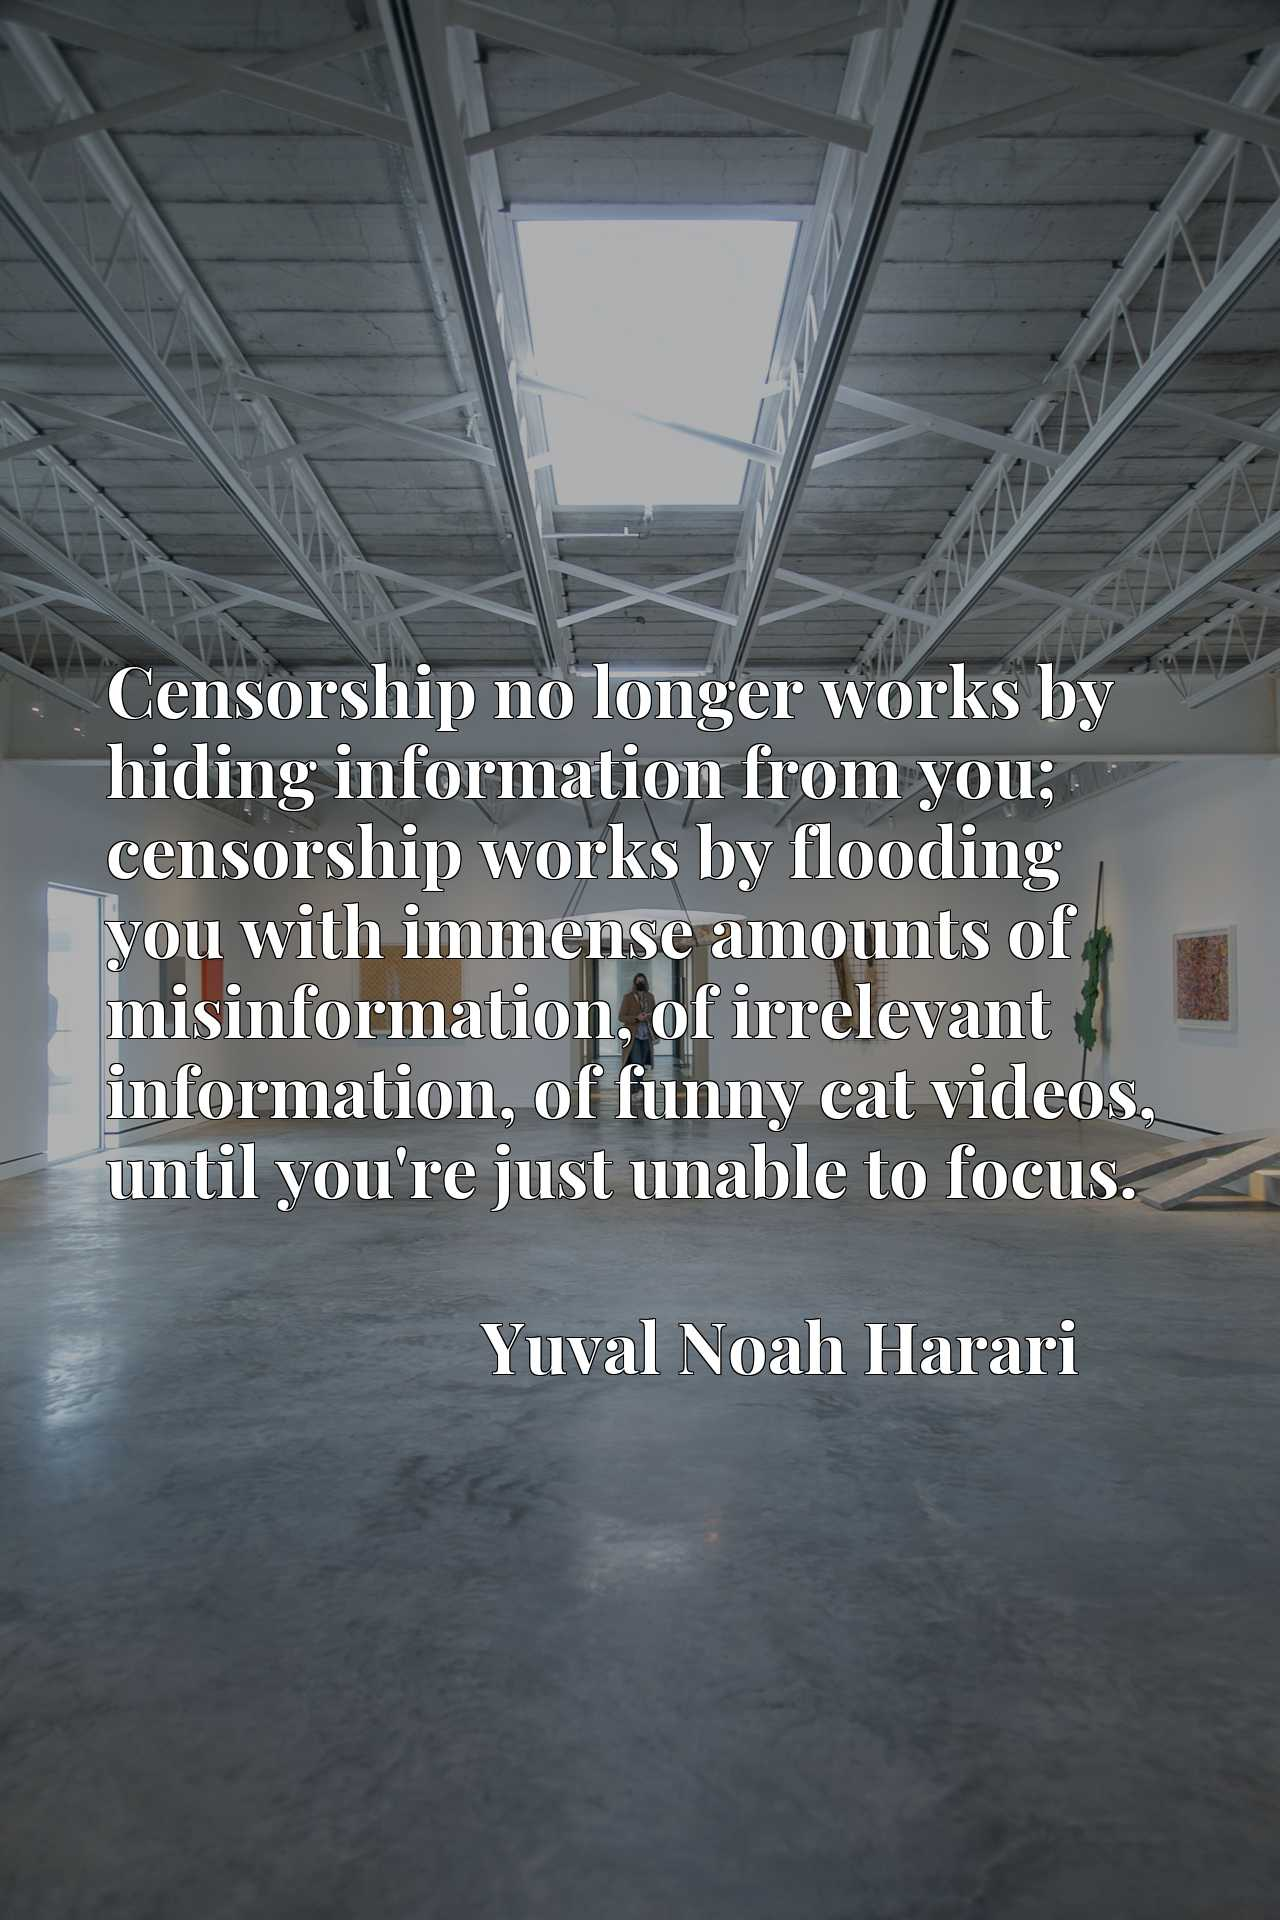 Censorship no longer works by hiding information from you; censorship works by flooding you with immense amounts of misinformation, of irrelevant information, of funny cat videos, until you're just unable to focus.